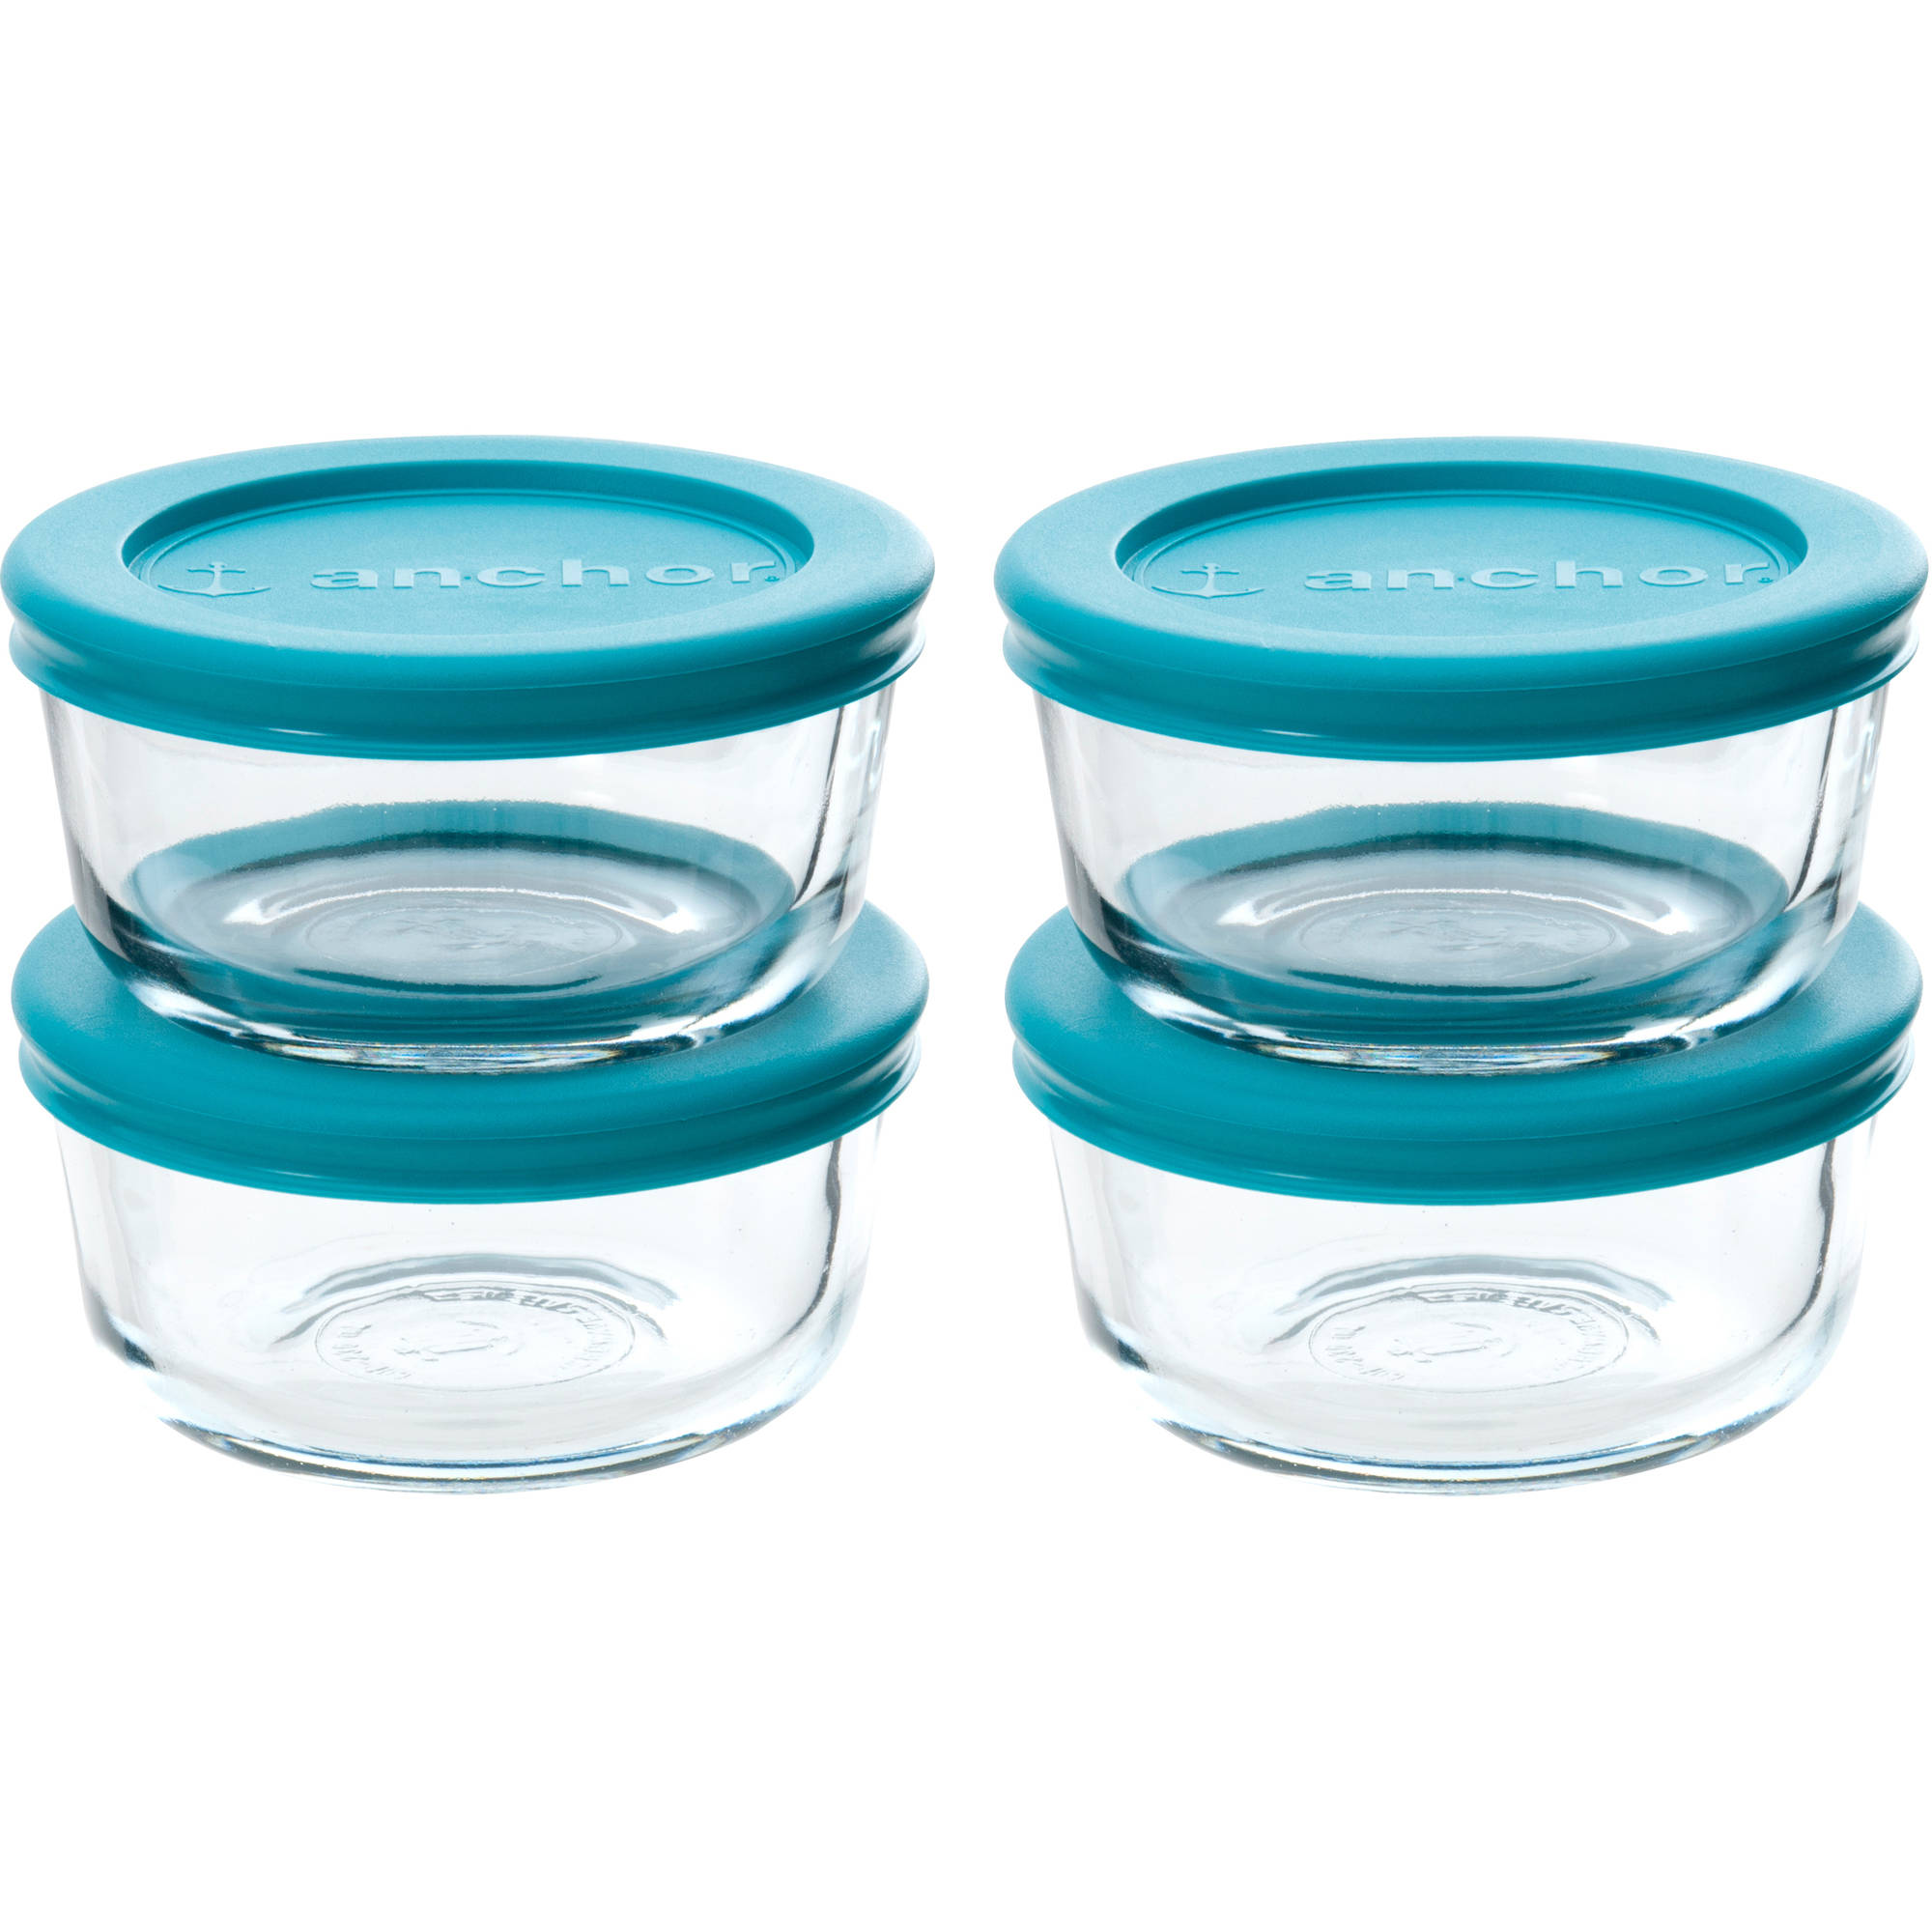 Anchor Hocking Company 1-Cup Round Food Storage Variety Pack with Teal Lids, 8pk